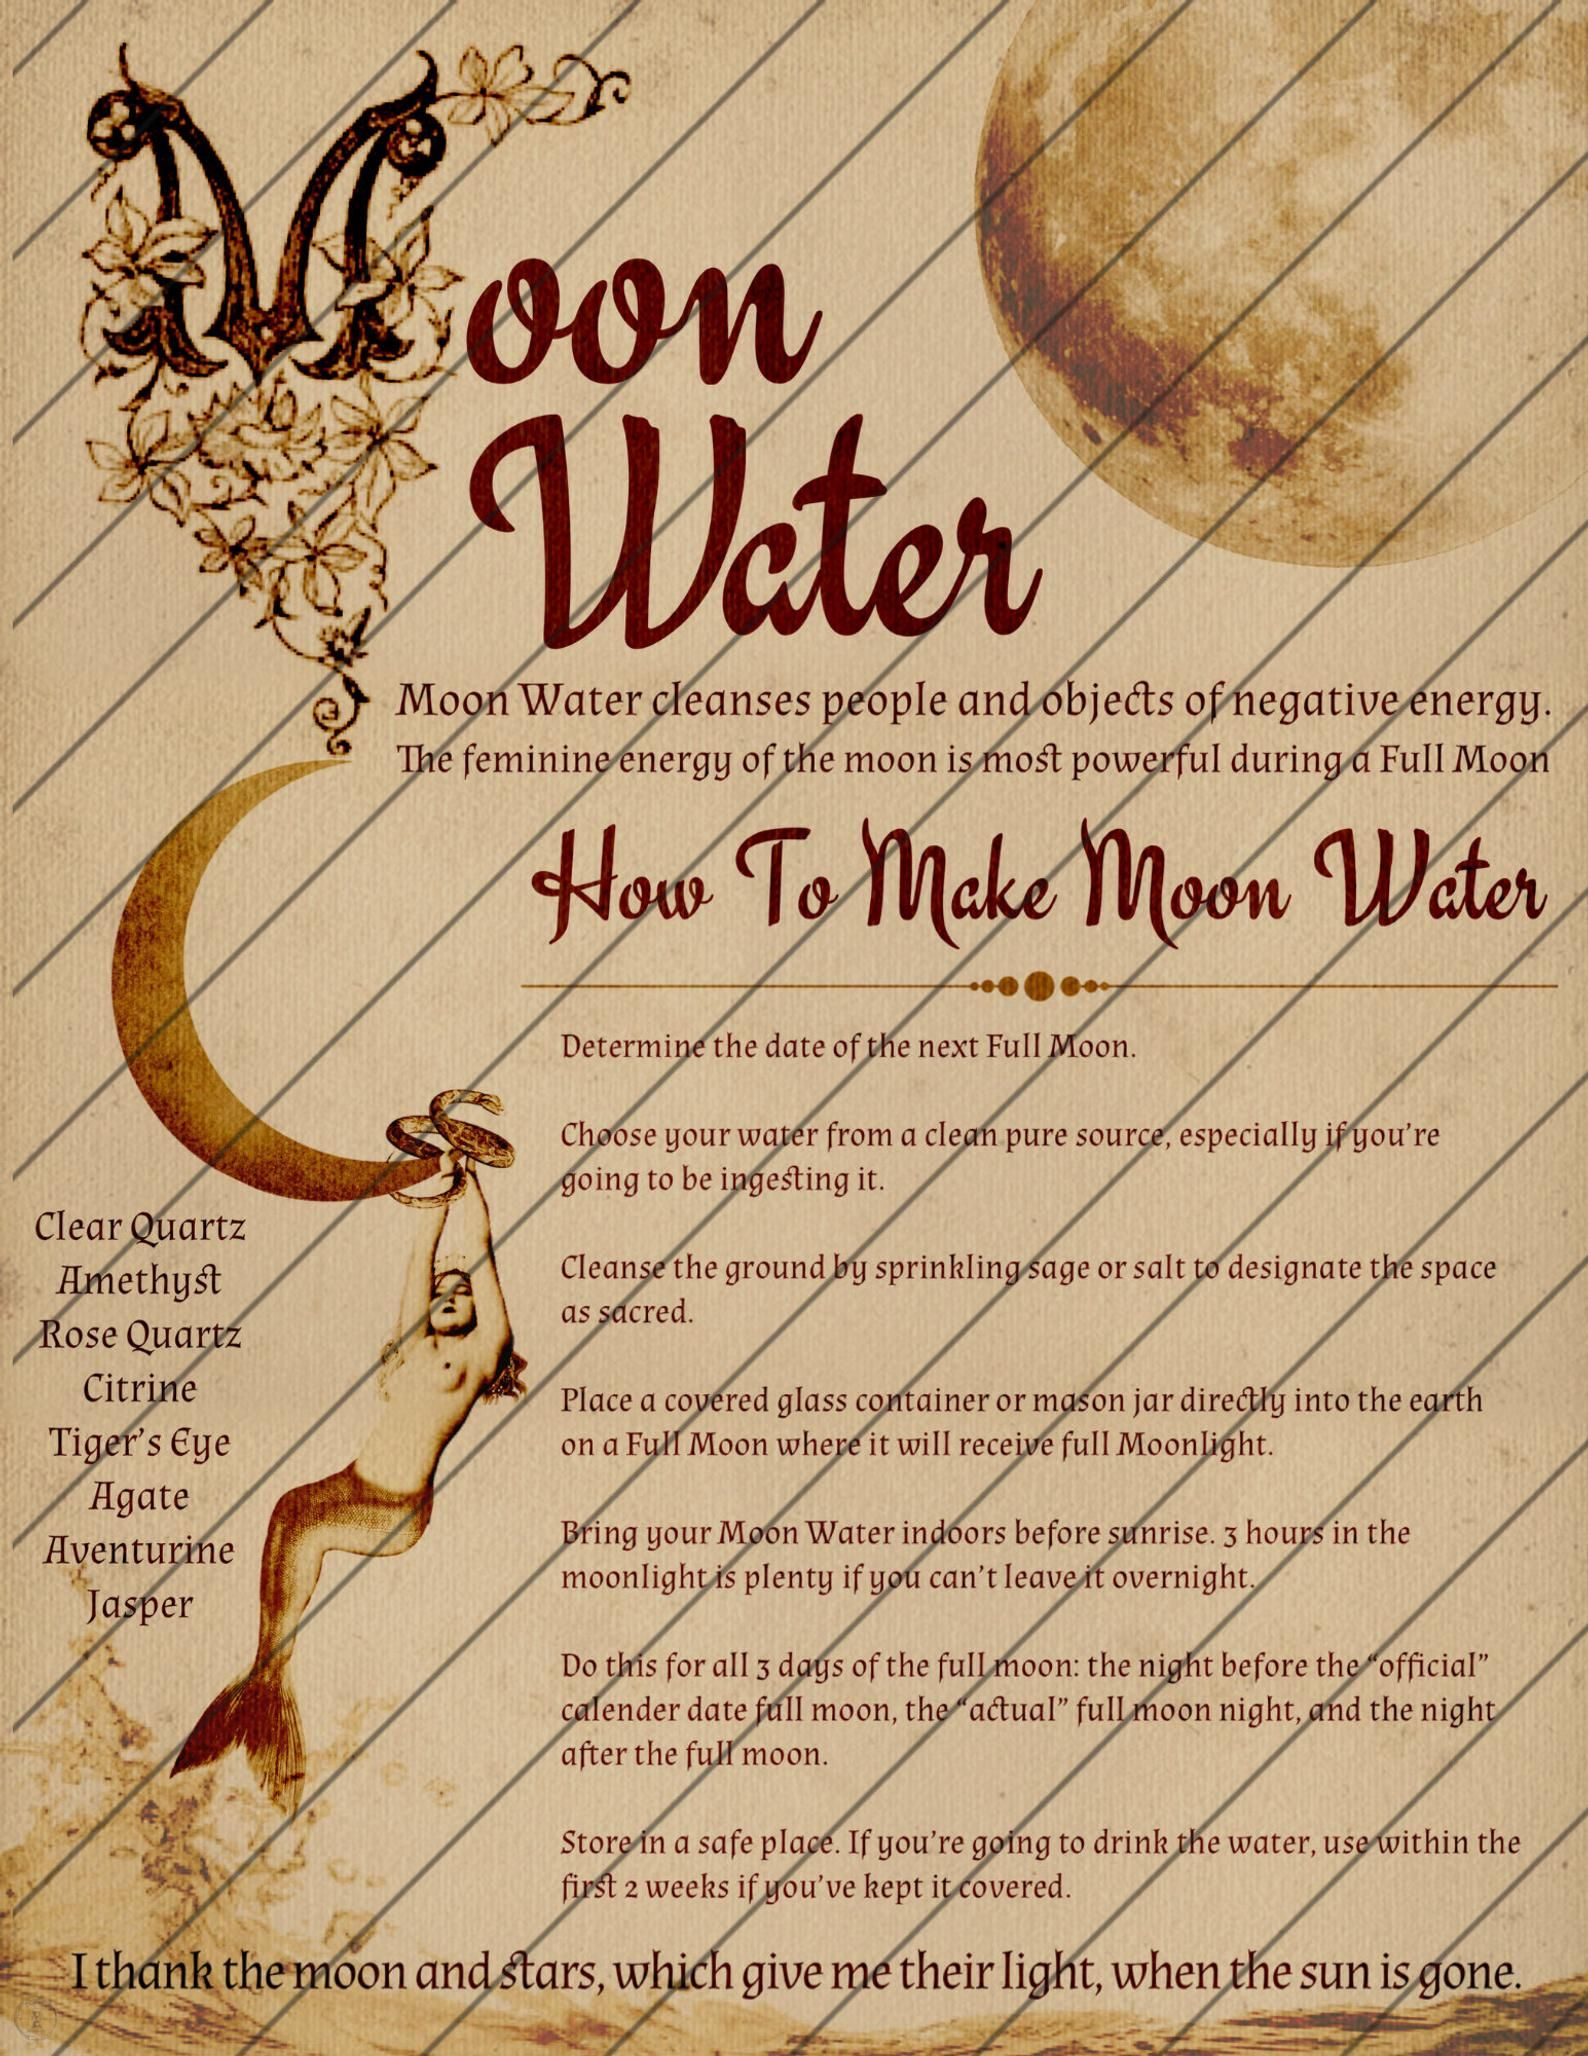 Book of Shadows Pages,  Protection Magic, Digital Download, Grimoire Pages, Mars Water, Black Salt, Moon Water, Instant Download, Smudging